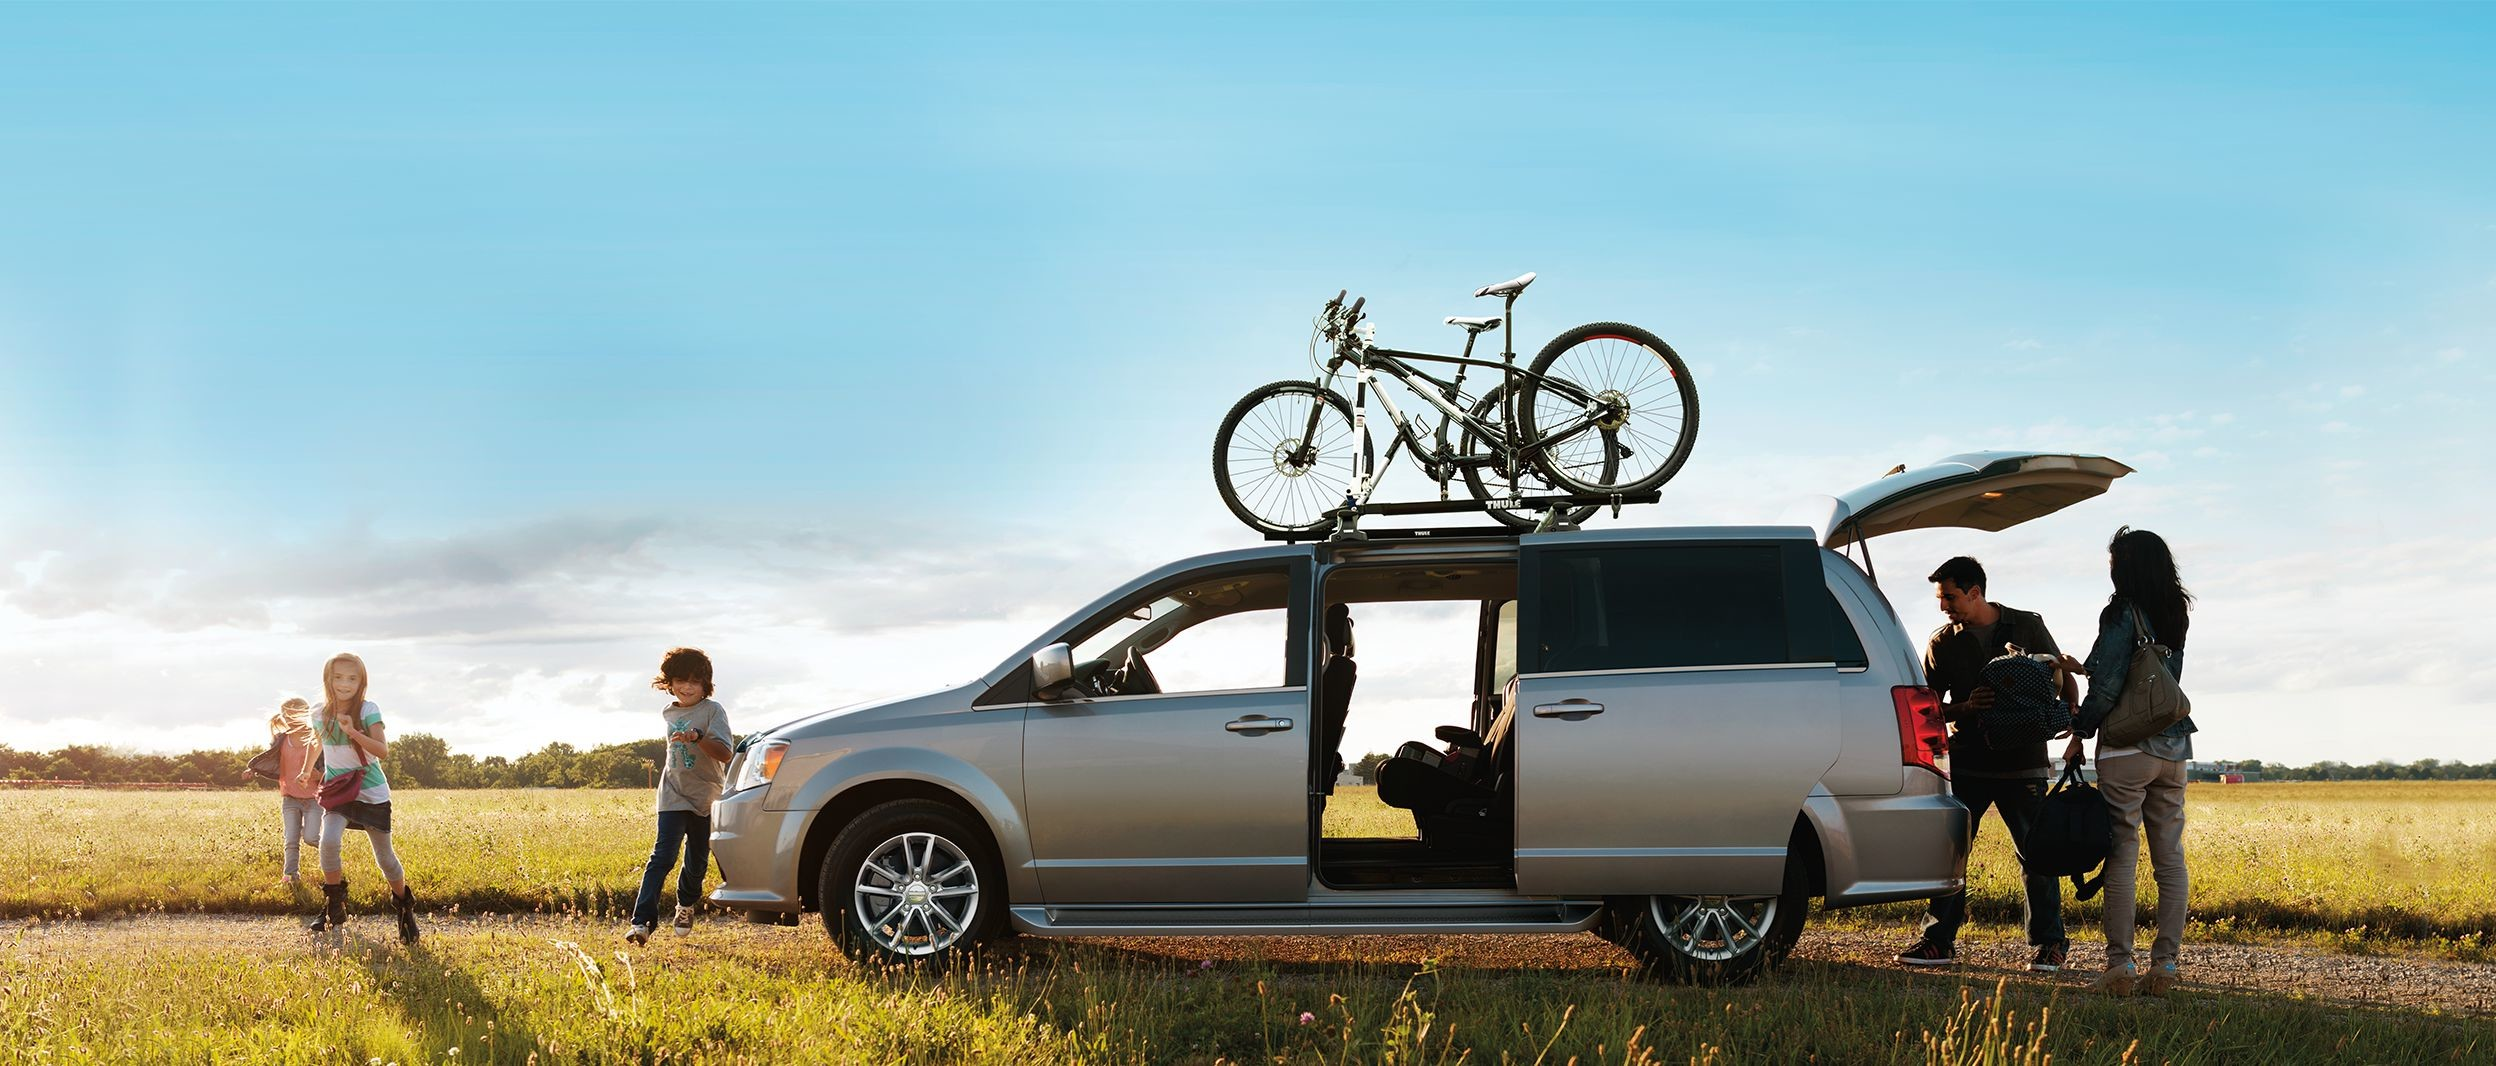 2019 Dodge Grand Caravan sideview view in Silver